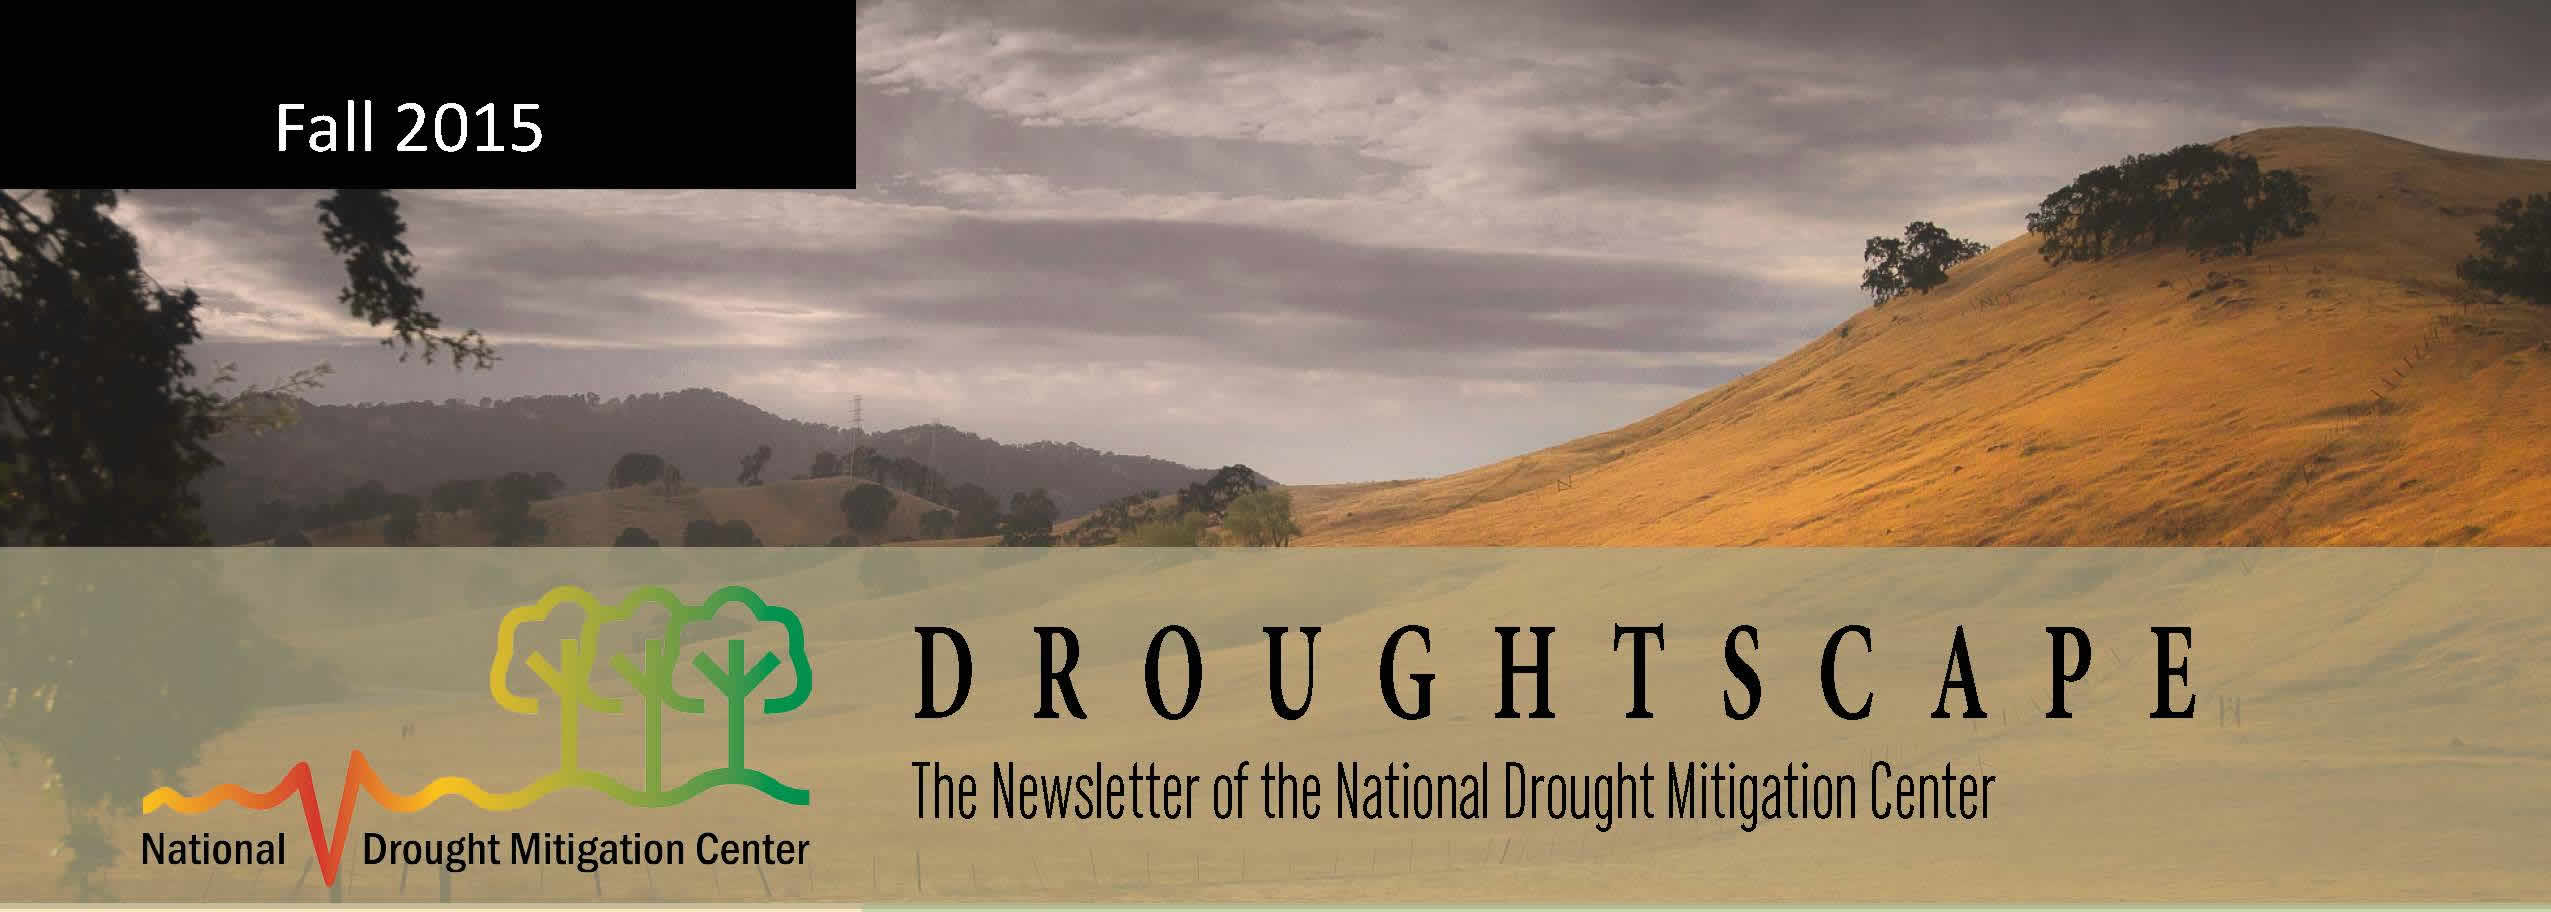 The fall 2015 issue of DroughtScape is now available.